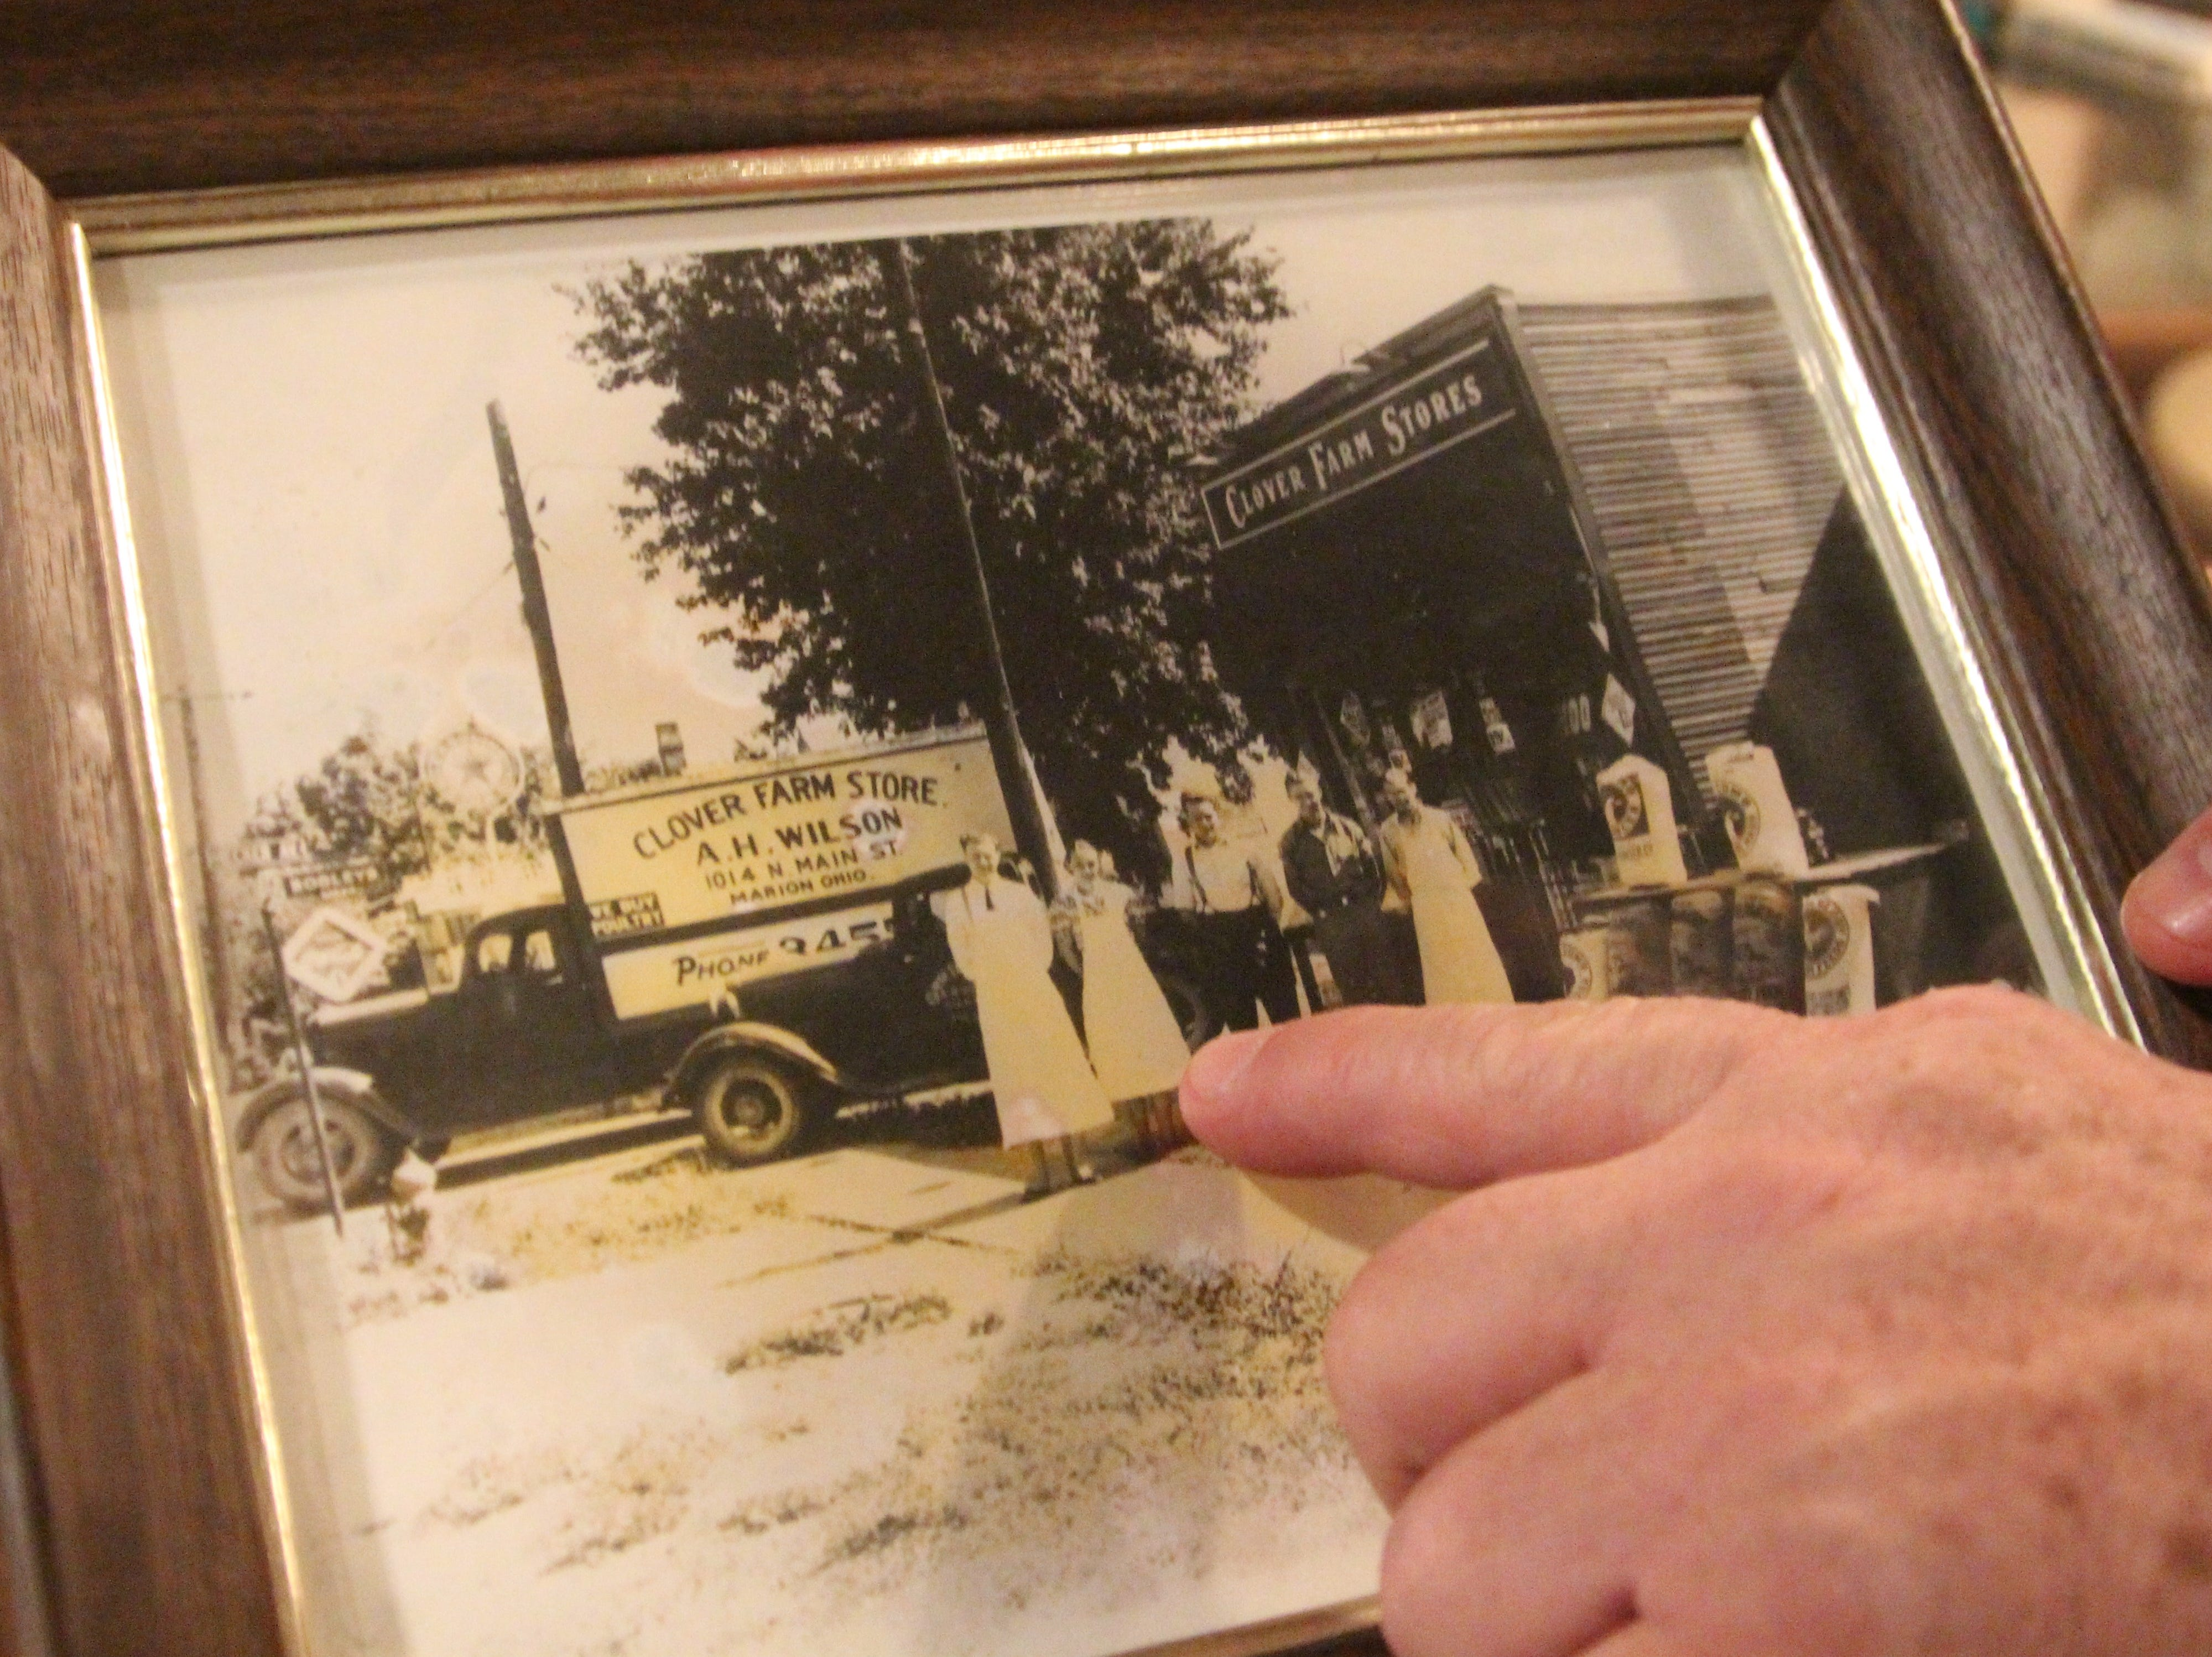 Mike Wilson points to a picture of his great uncle Alfred Harvey Wilson who helped manage the Clover Farm Stores in northern Ohio.